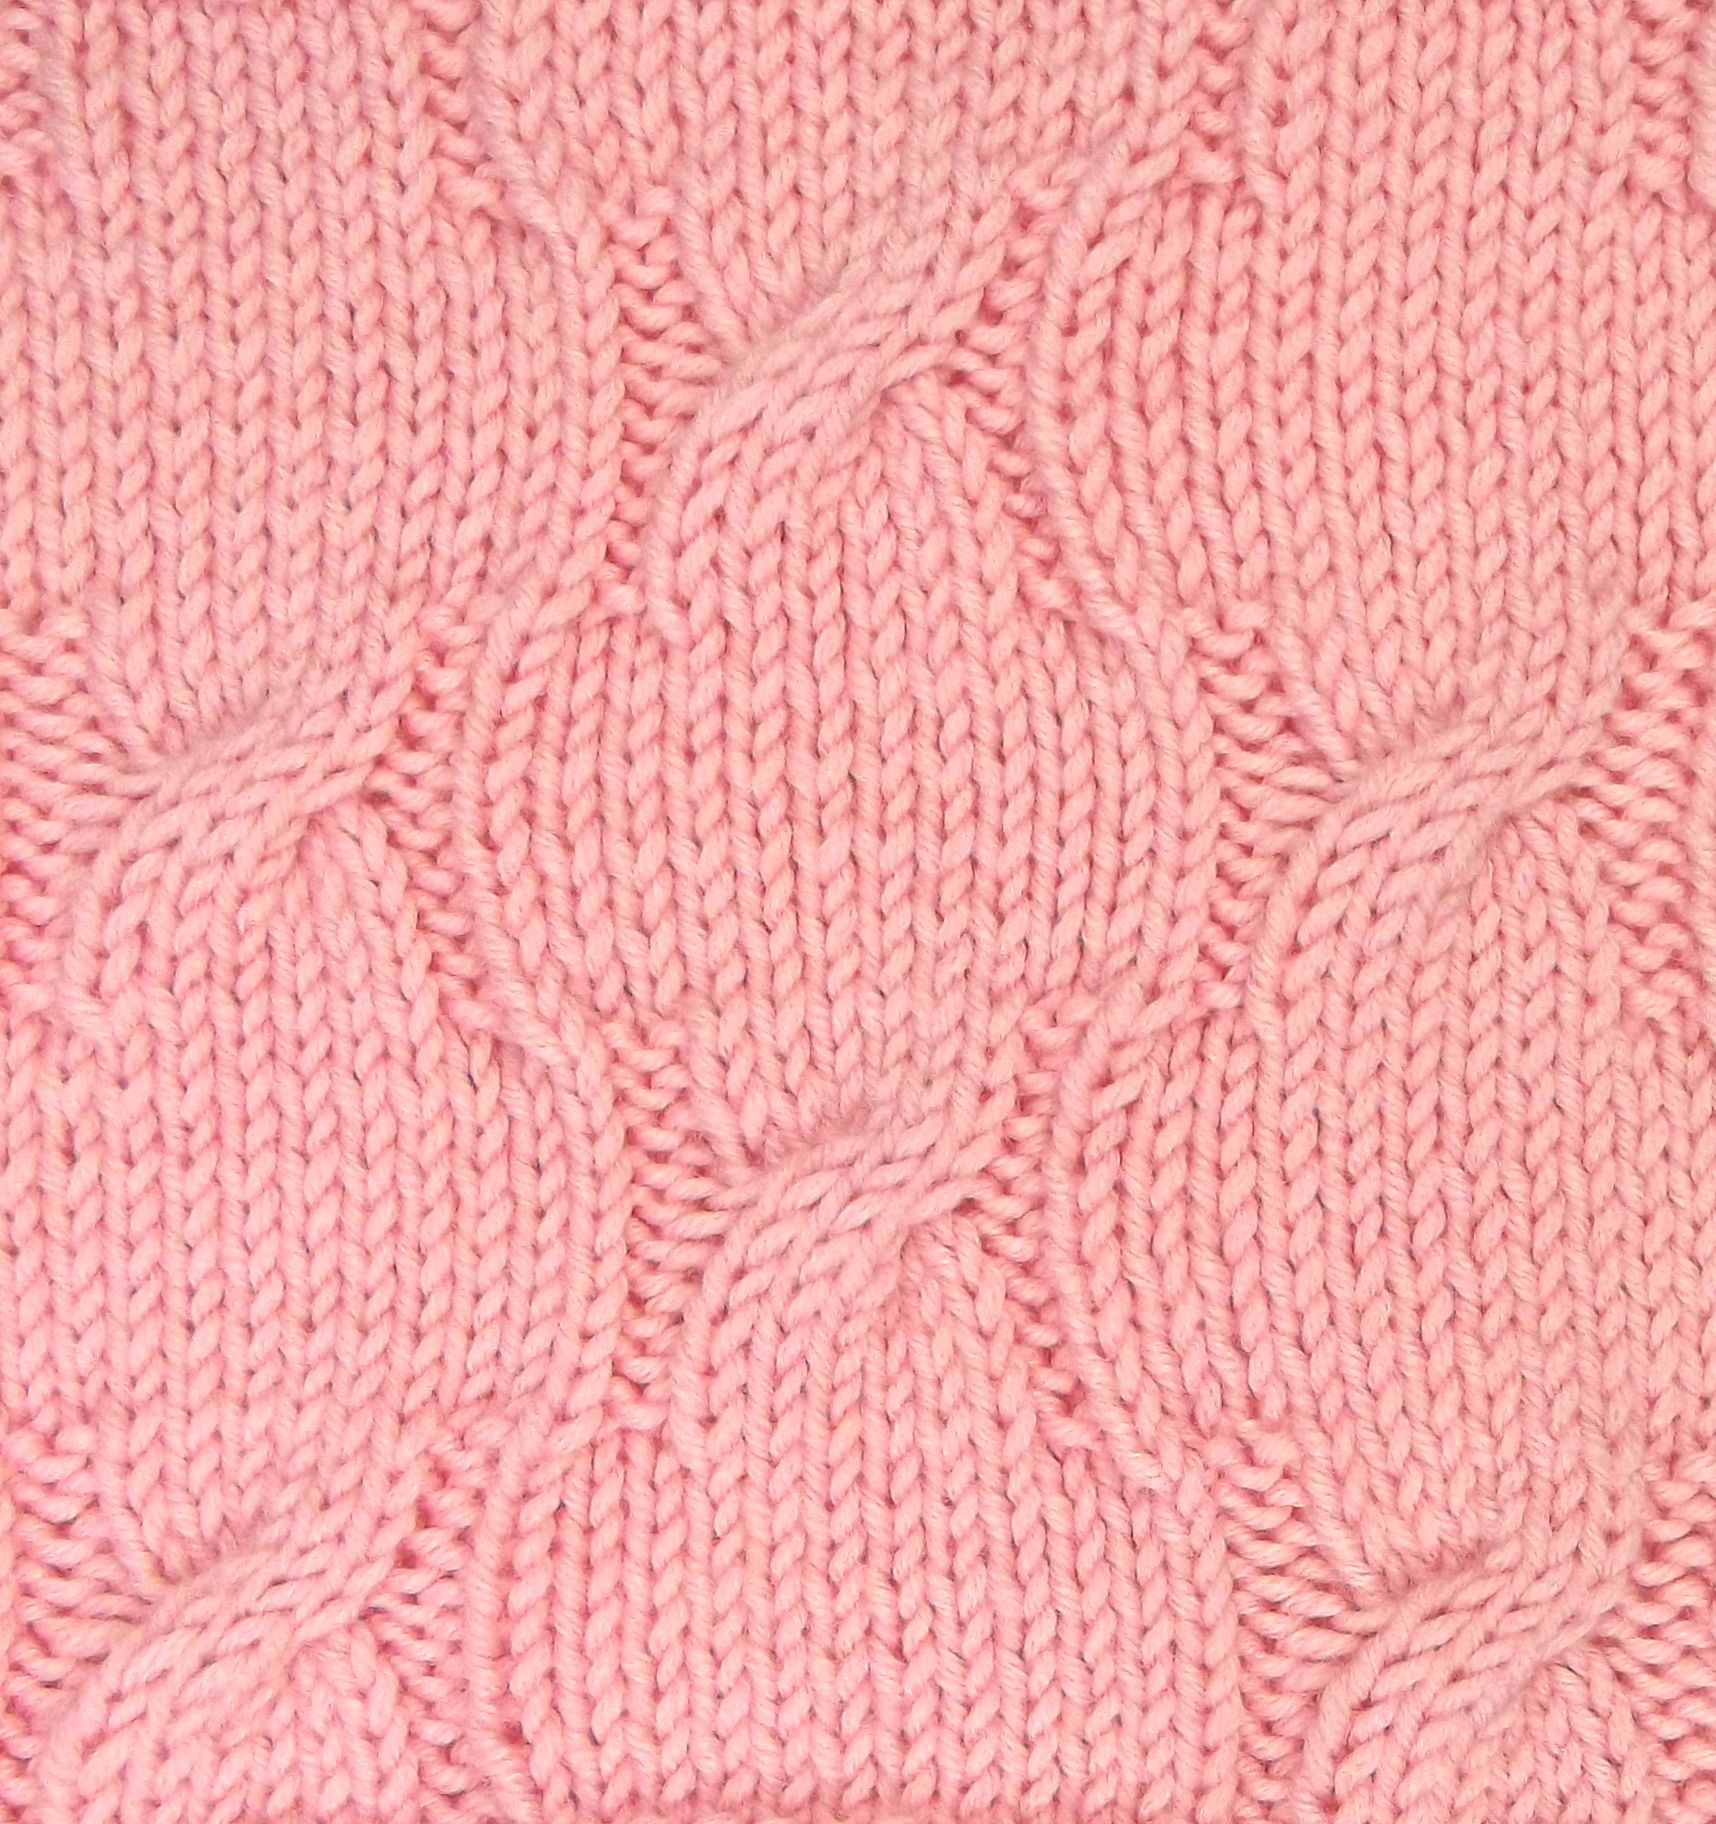 Petals is an allover cable pattern that would work great for your ...